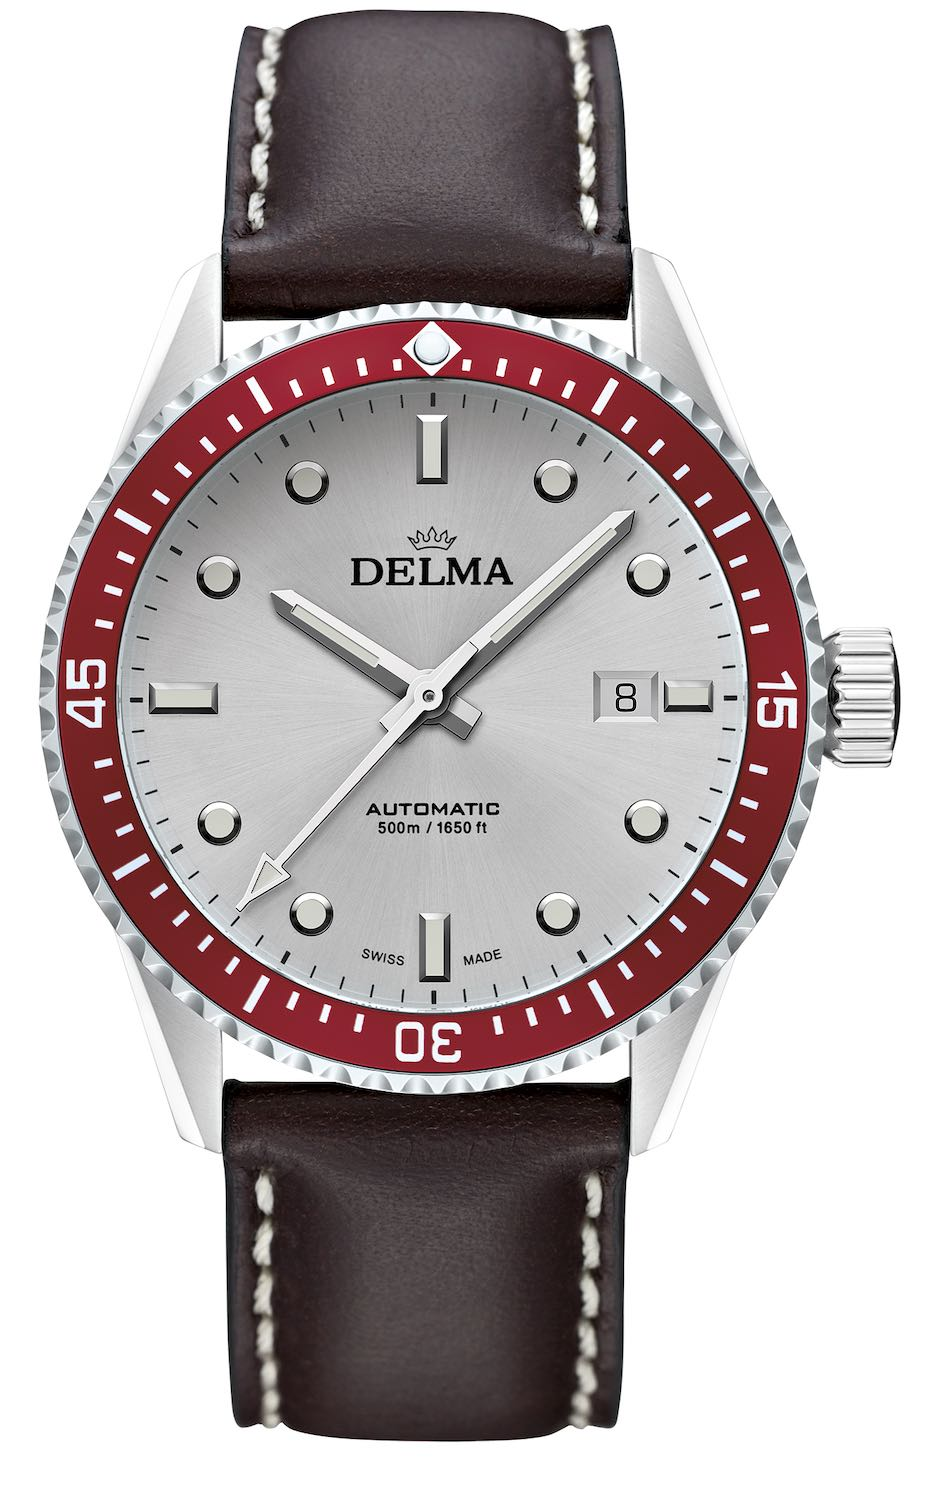 Delma Cayman Automatic - Value Proposition Diver - 4